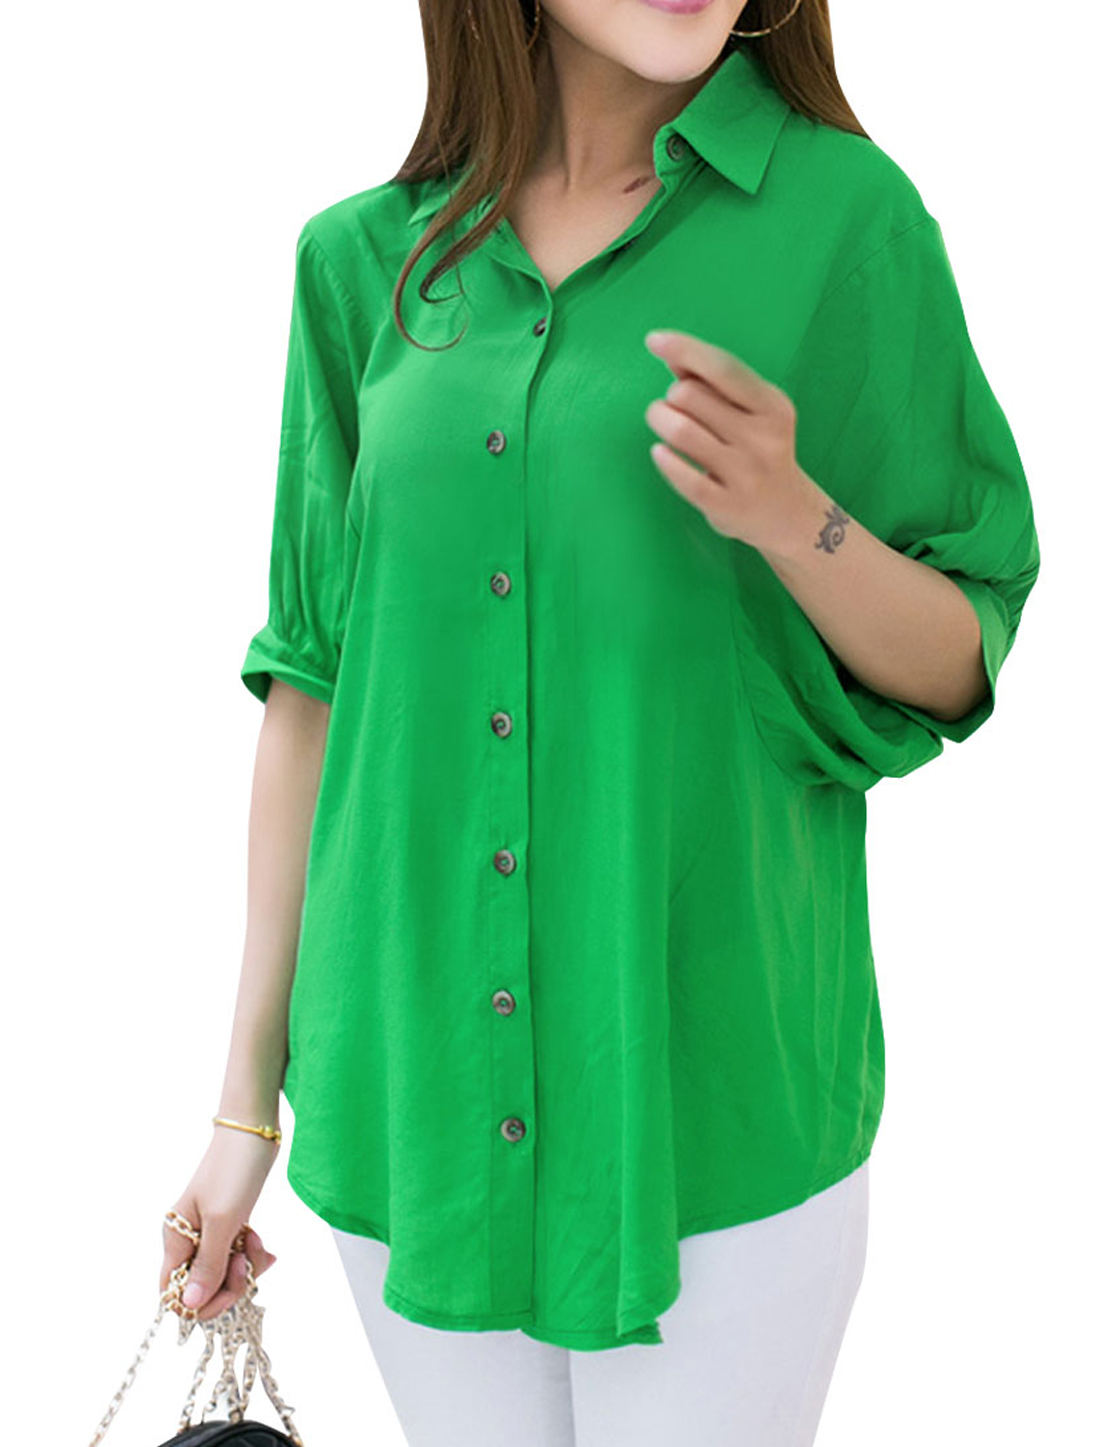 Women Point Collar Single Breasted Casual Top Shirt Green S